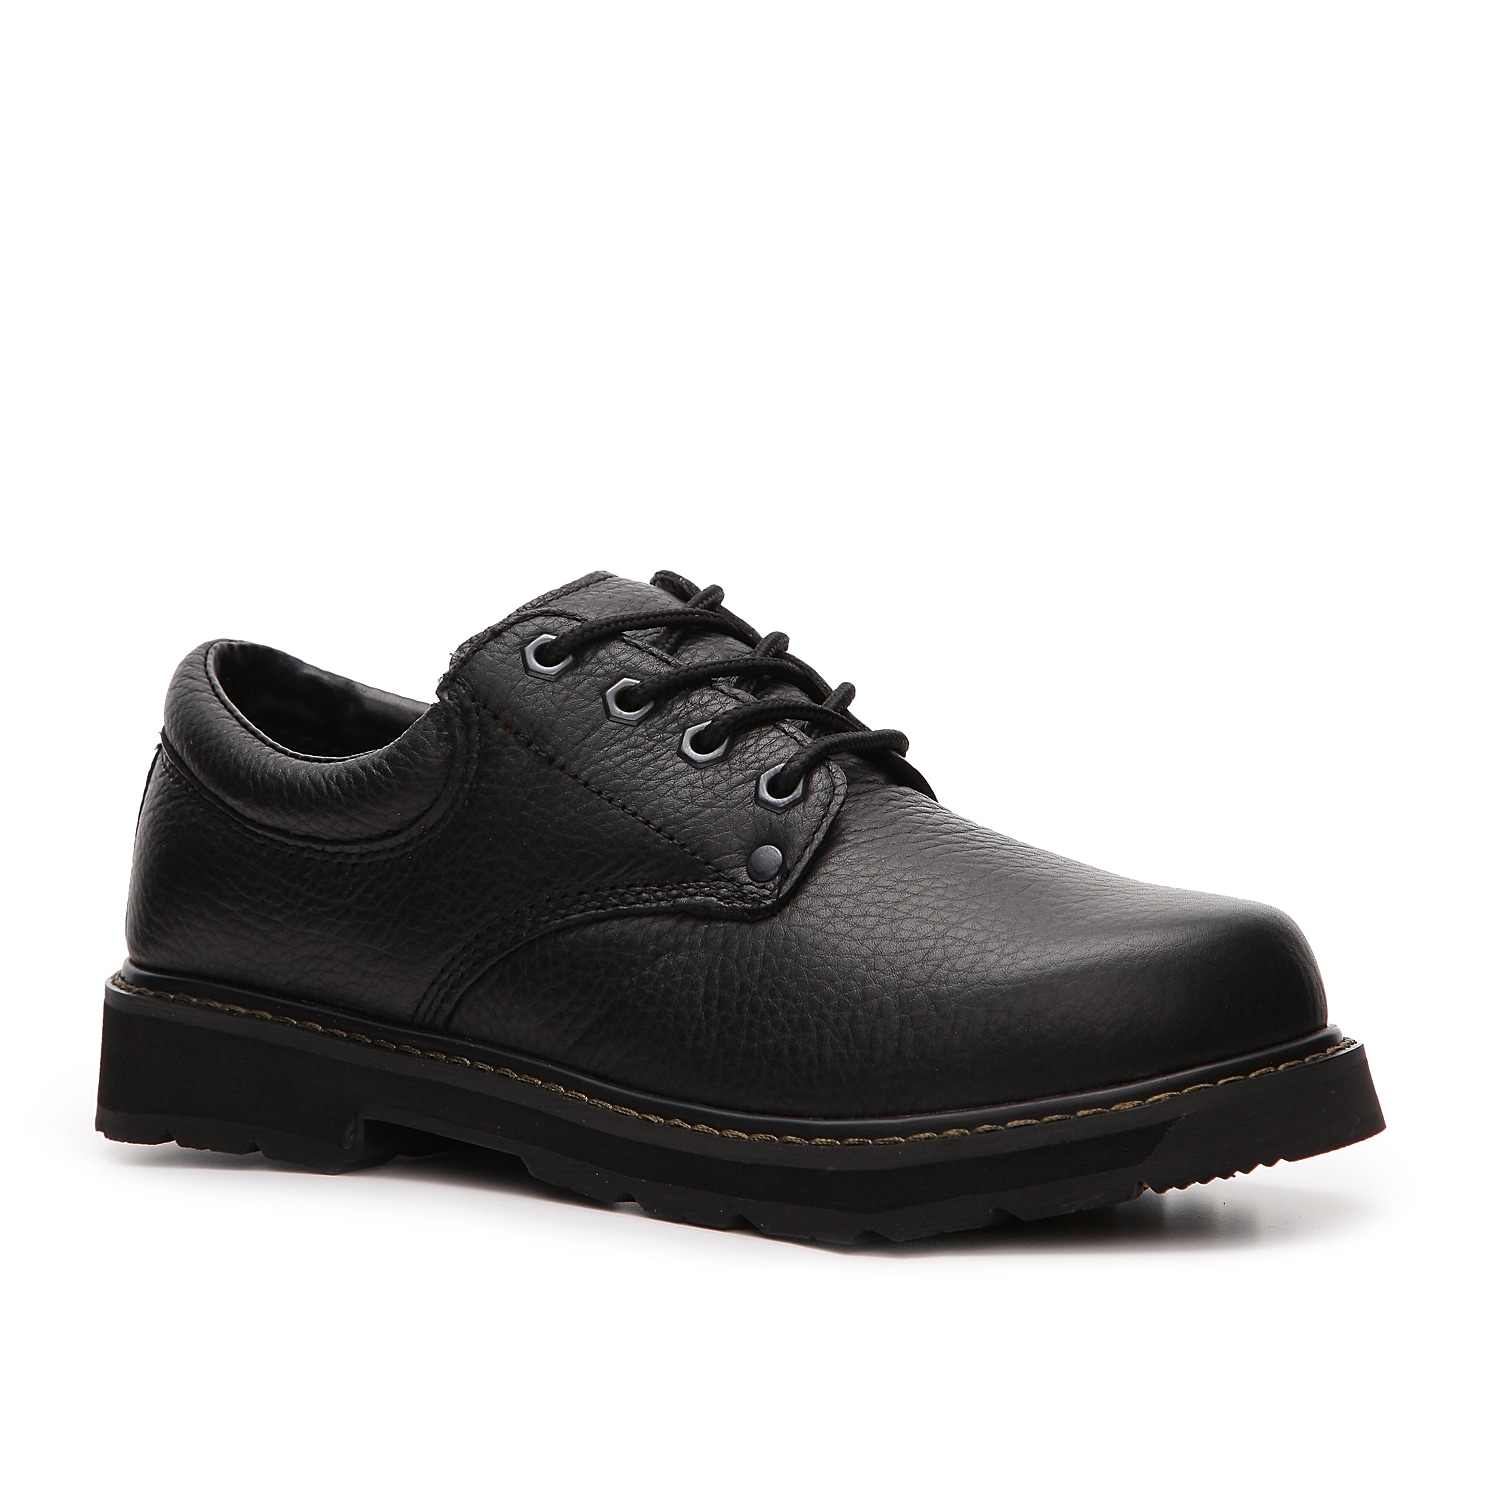 Avoid tired feet by wearing the comfortable Dr. Scholl\\\'s Harrington for those long work days.